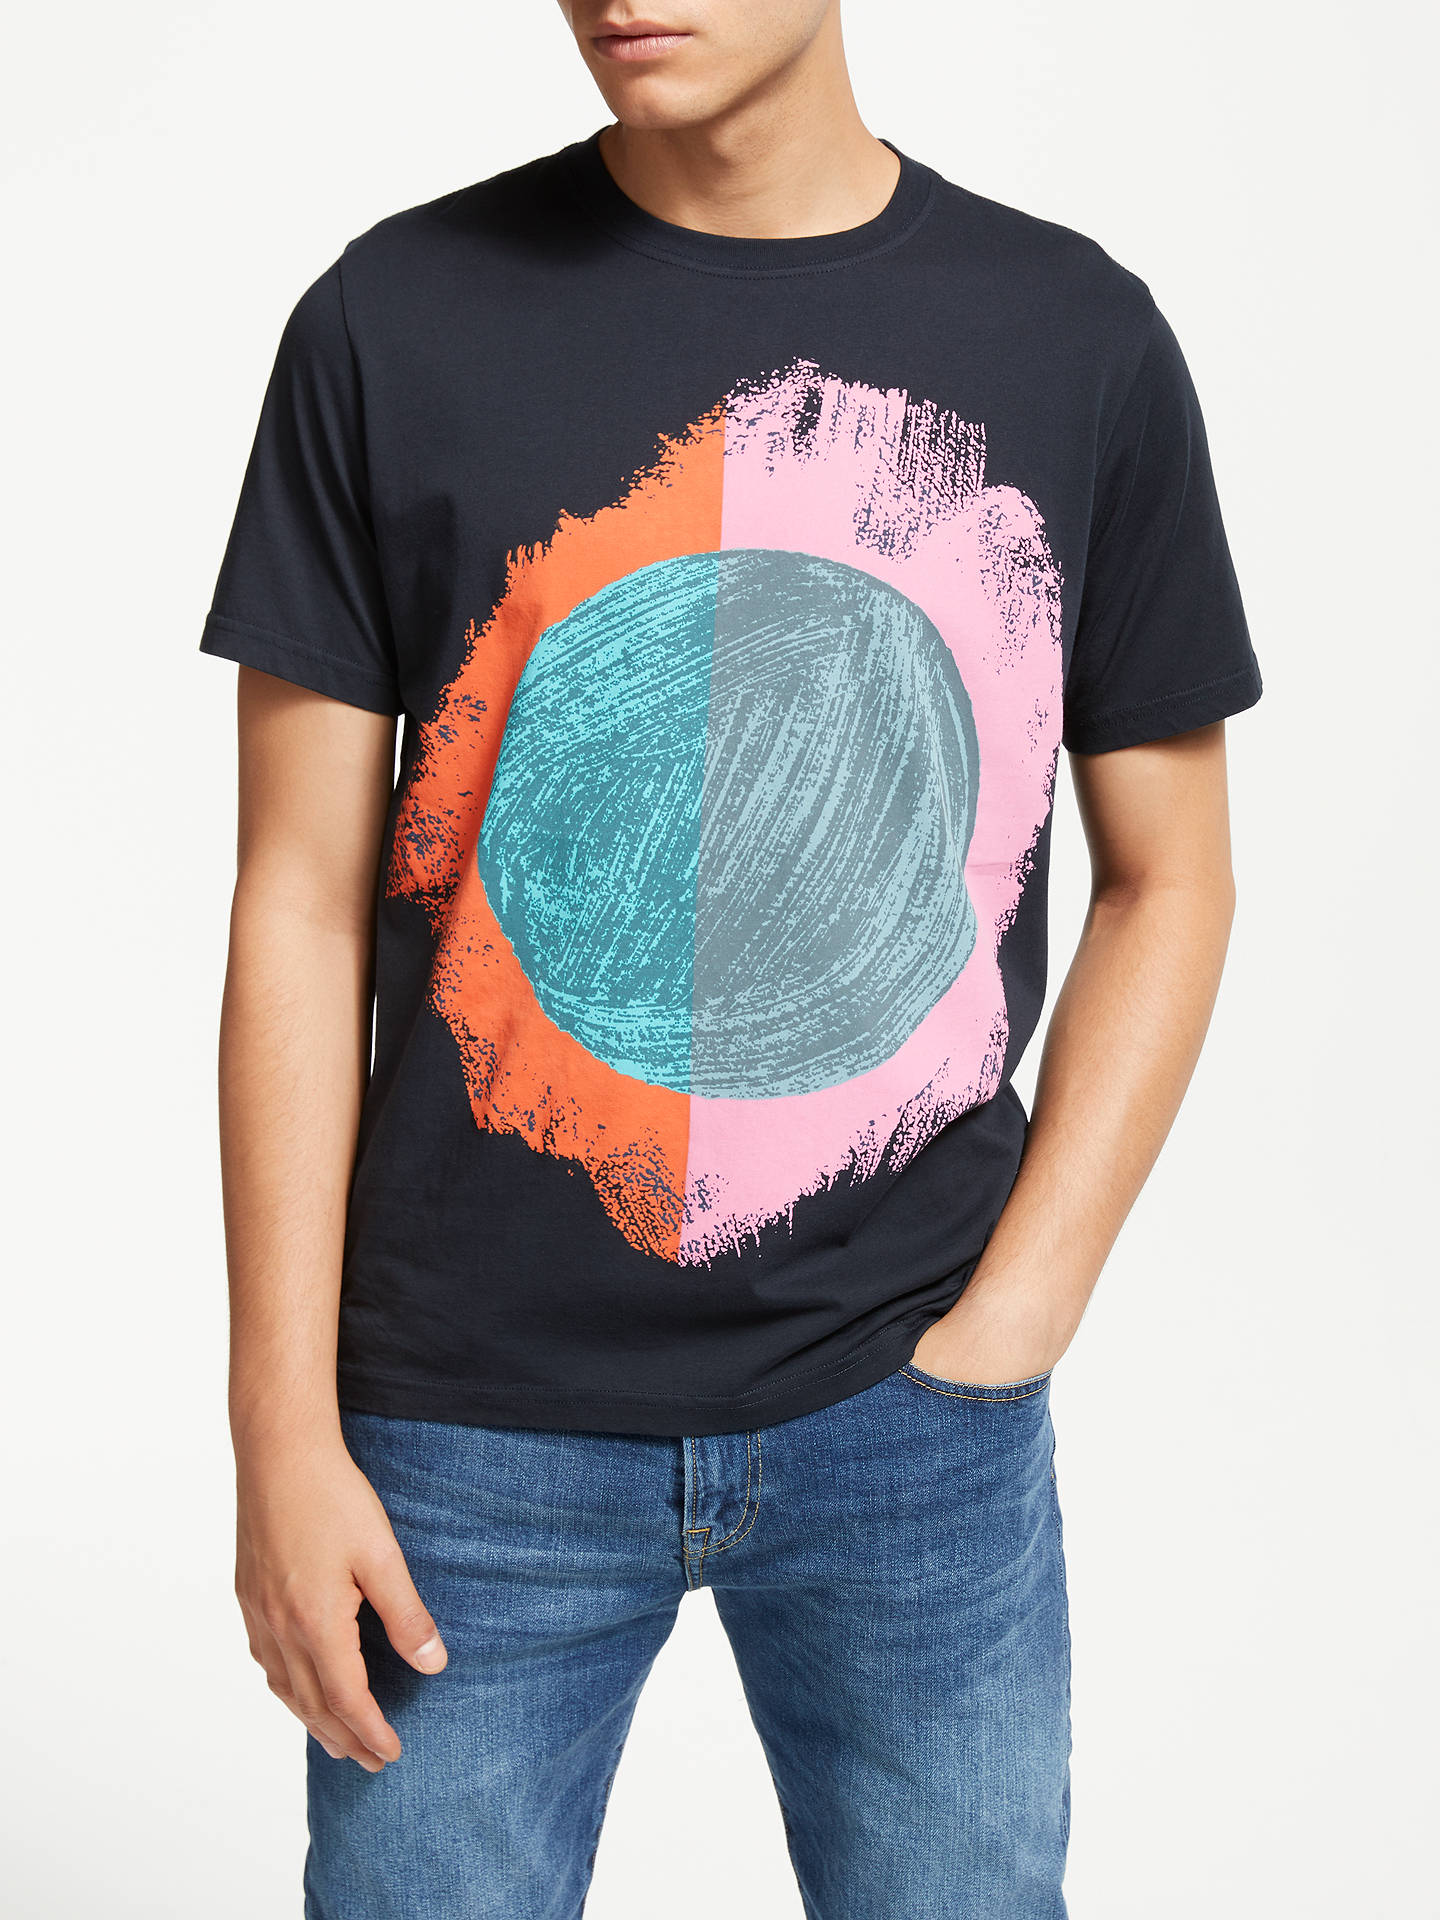 BuyPaul Smith Sun Print Tee, Multi, S Online at johnlewis.com